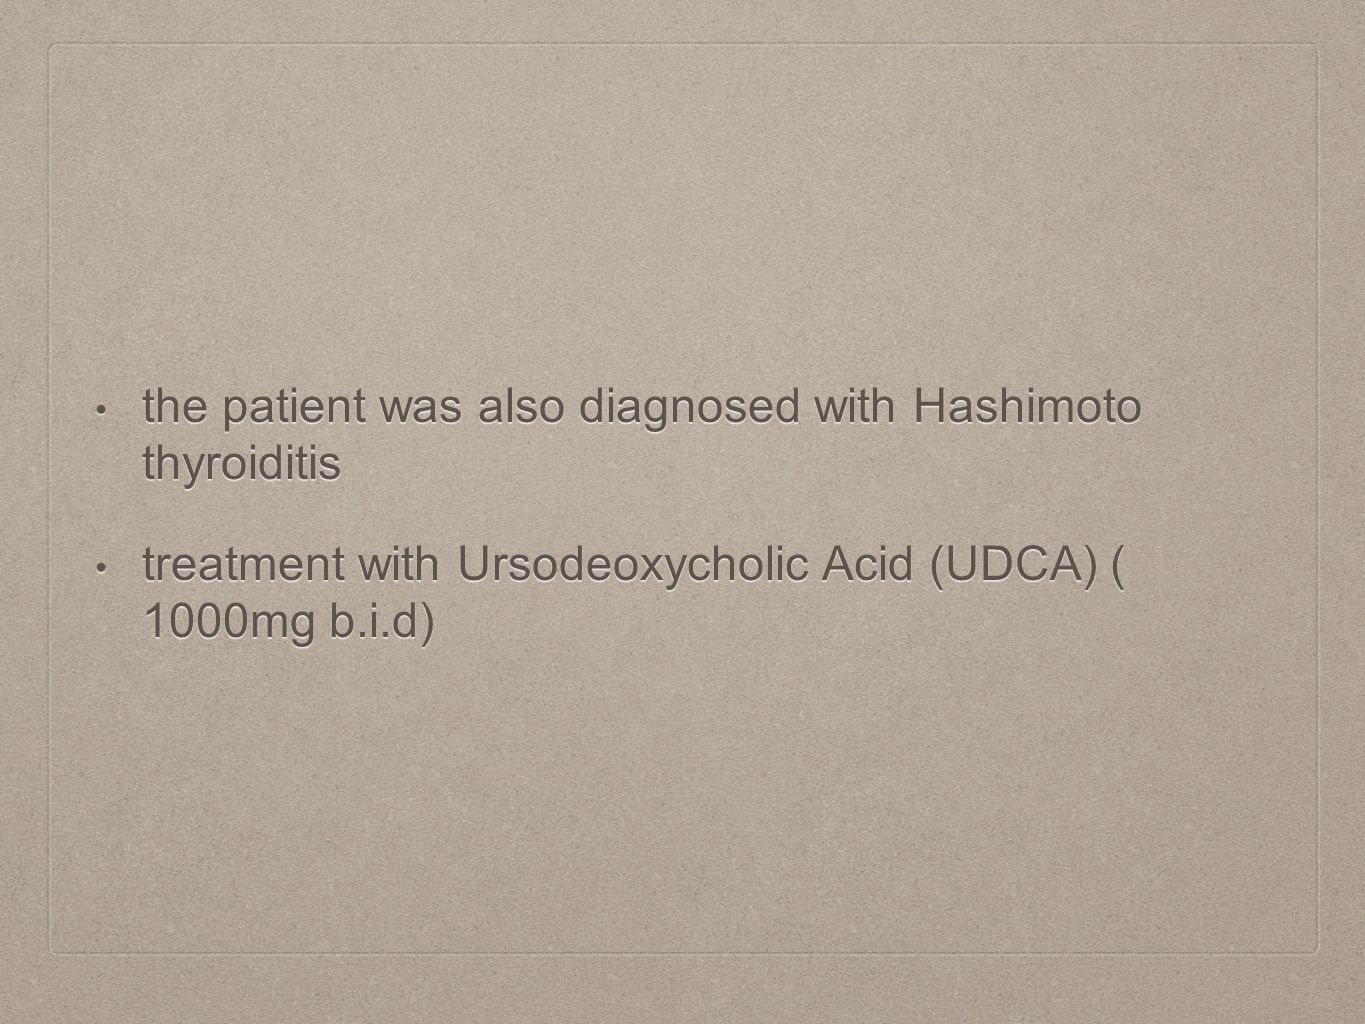 the patient was also diagnosed with Hashimoto thyroiditis the patient was also diagnosed with Hashimoto thyroiditis treatment with Ursodeoxycholic Acid (UDCA) ( 1000mg b.i.d) treatment with Ursodeoxycholic Acid (UDCA) ( 1000mg b.i.d)